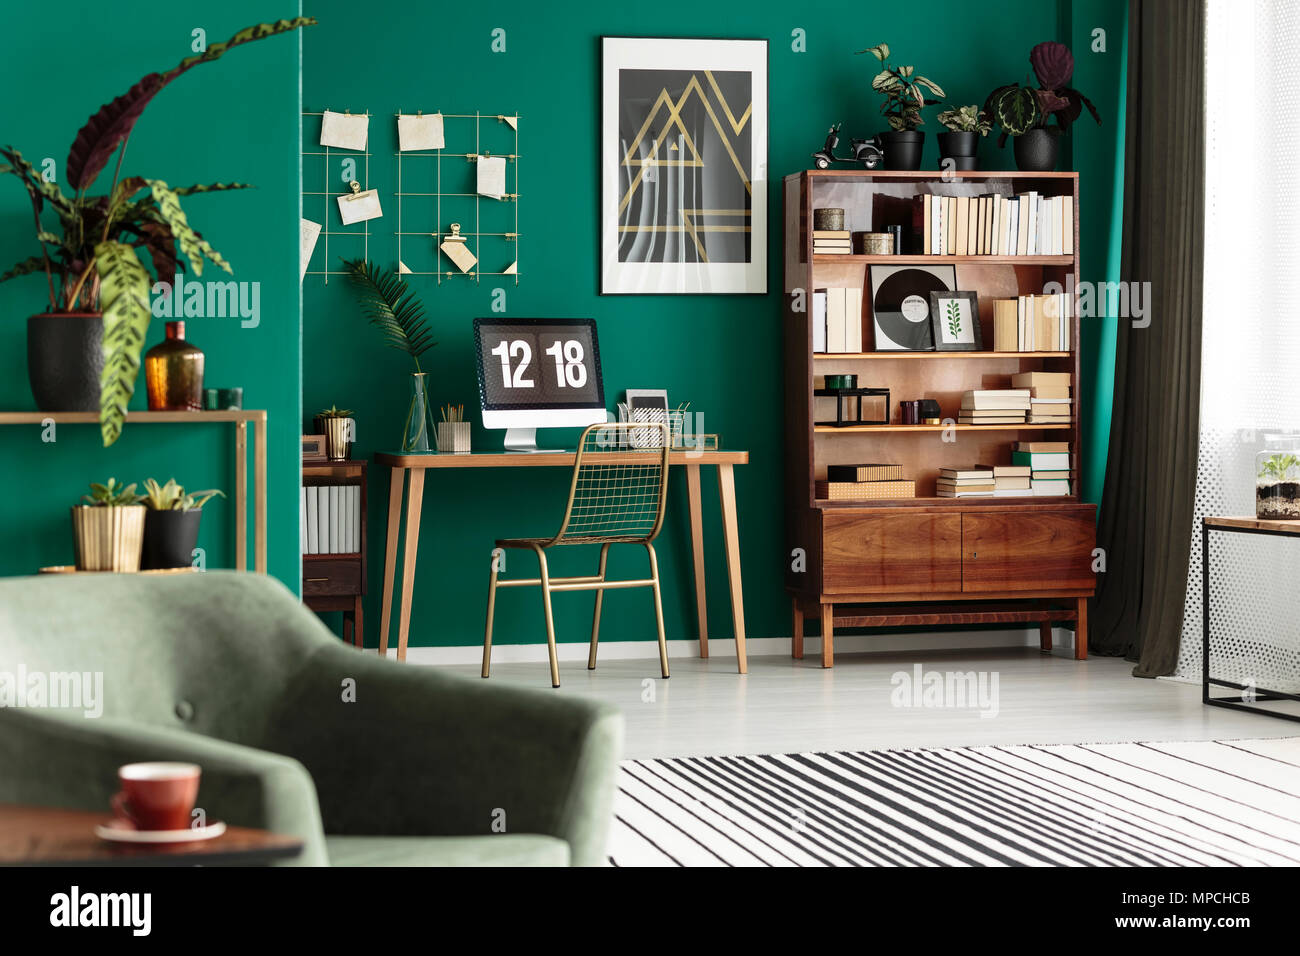 Gold chair at desk with desktop computer in green, cozy apartment interior with poster - Stock Image